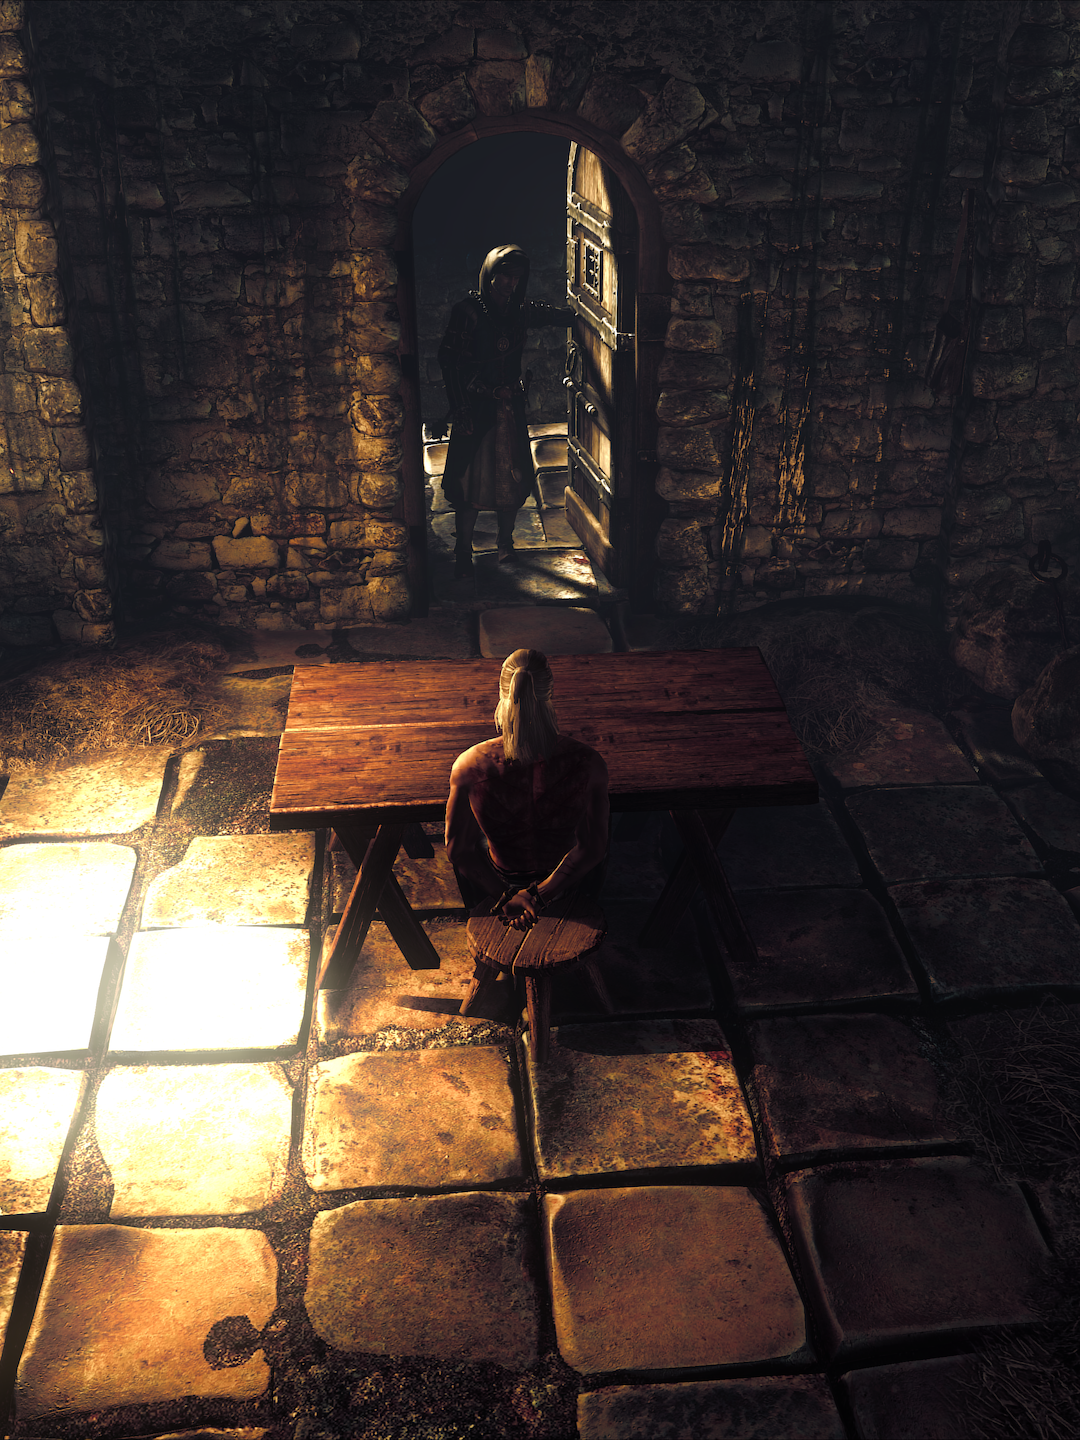 interviewwiththevampire.png - Witcher 2: Assassins of Kings, the